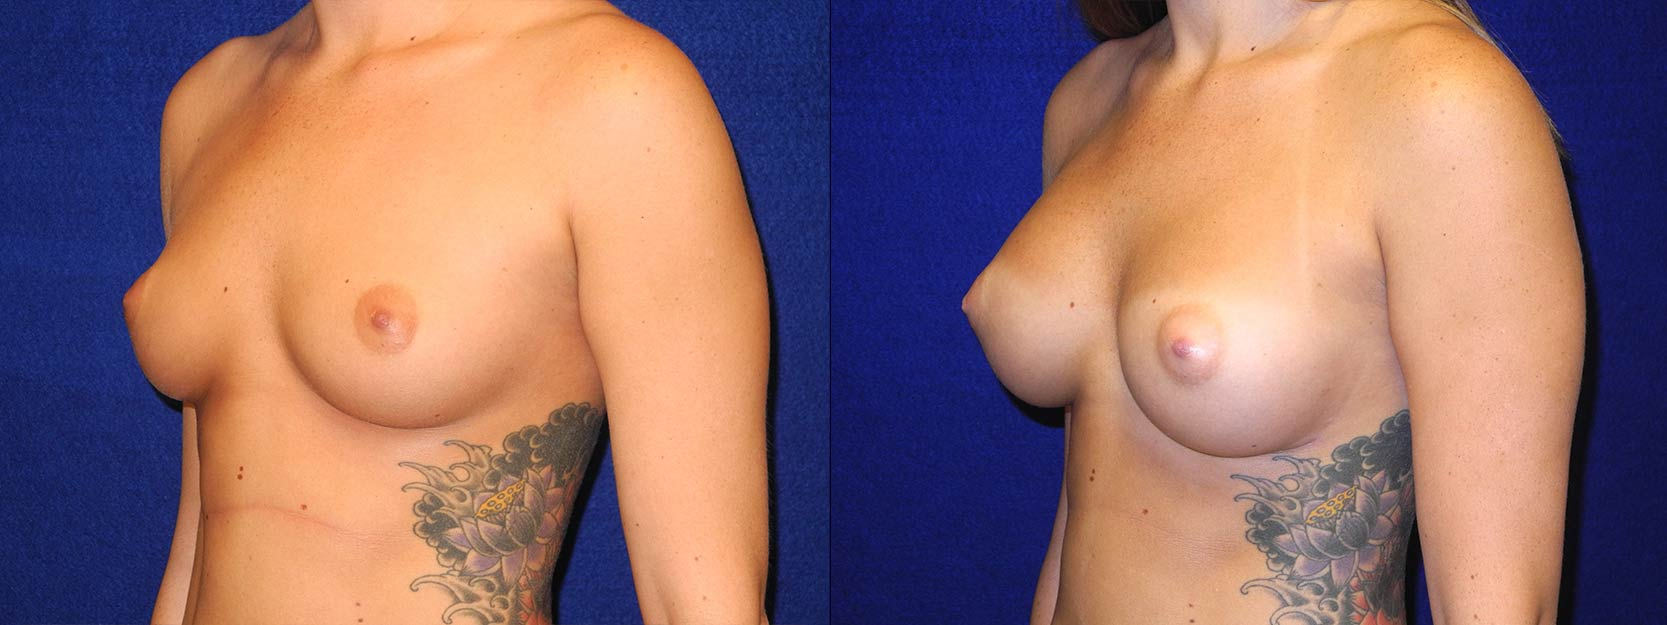 Left 3/4 View - Breast Augmentation - Silicone Implants